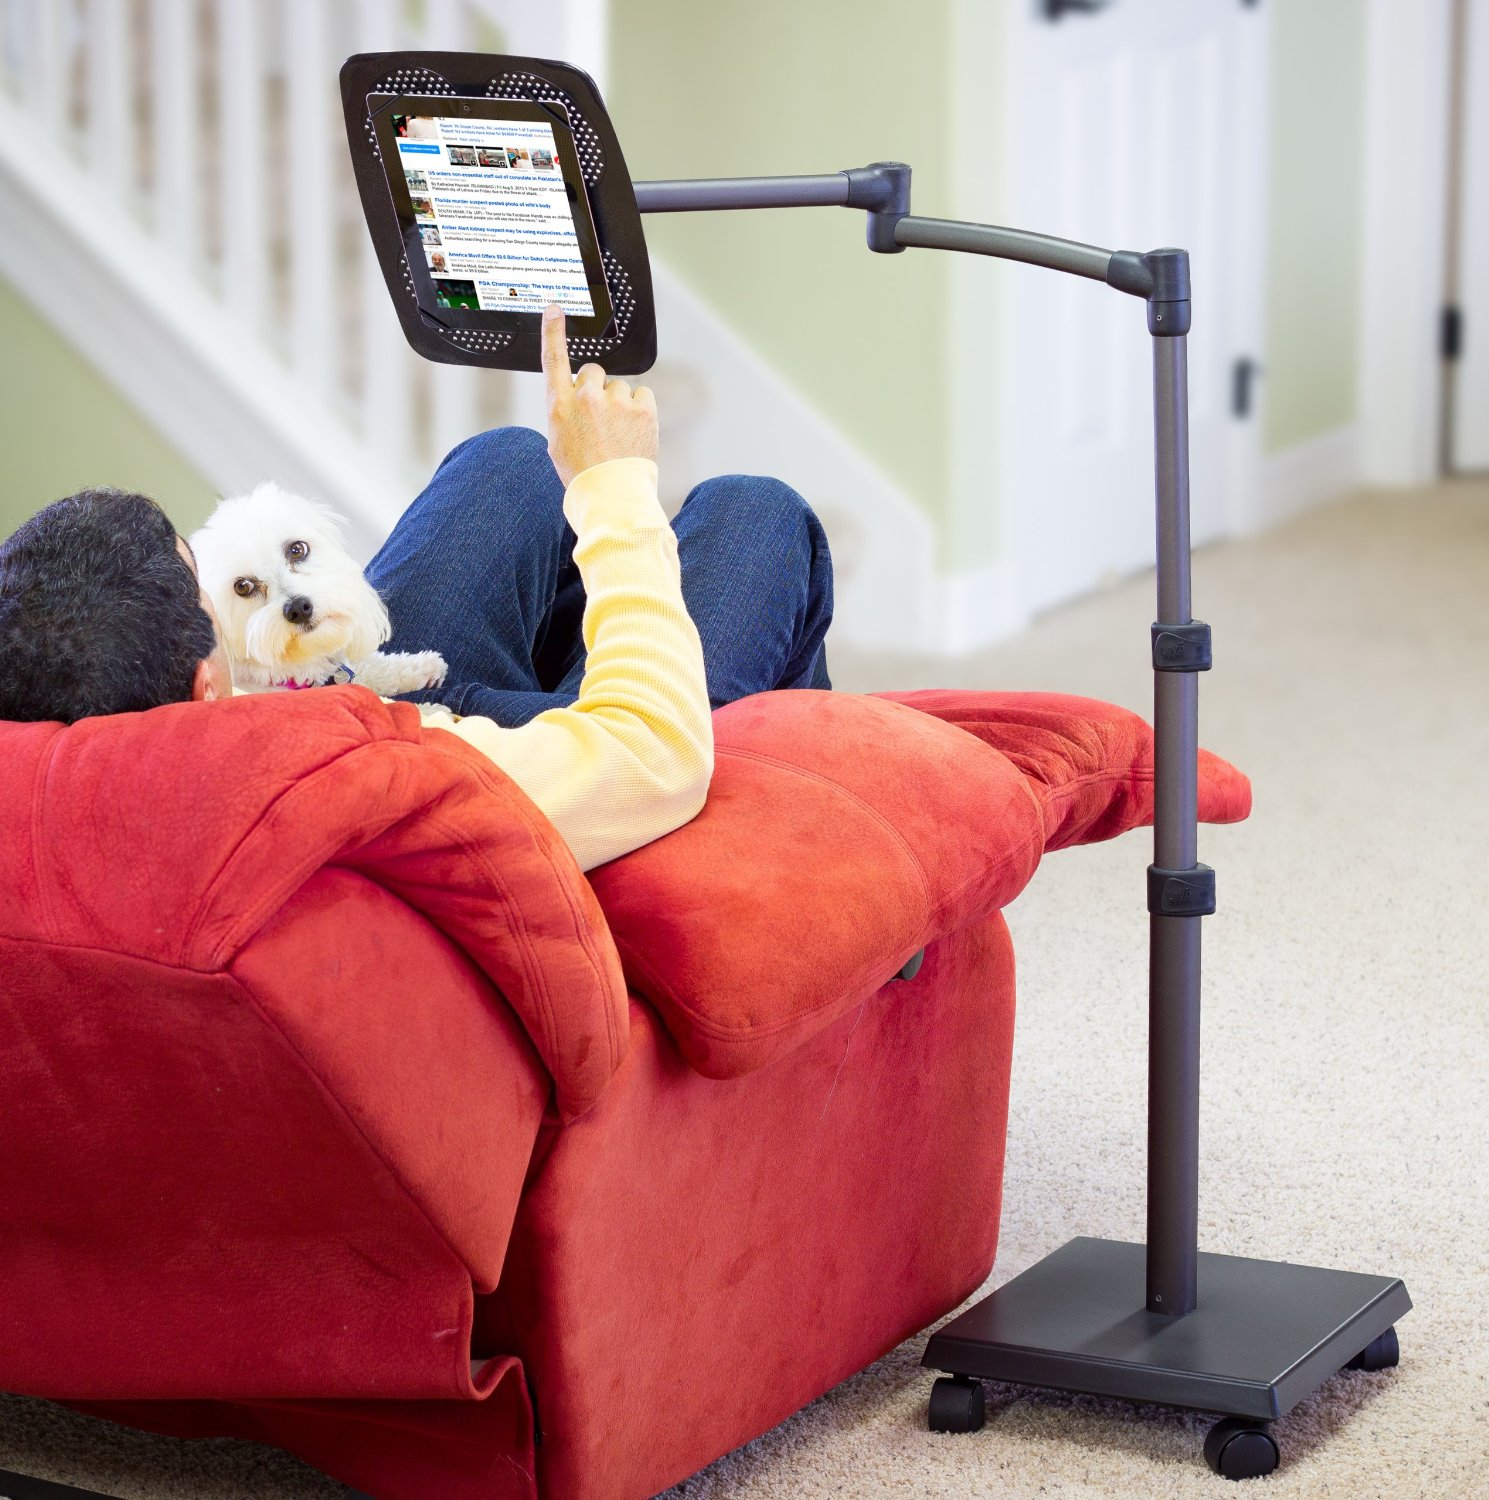 The Best Tablet Holder For Watching Movies On Bed